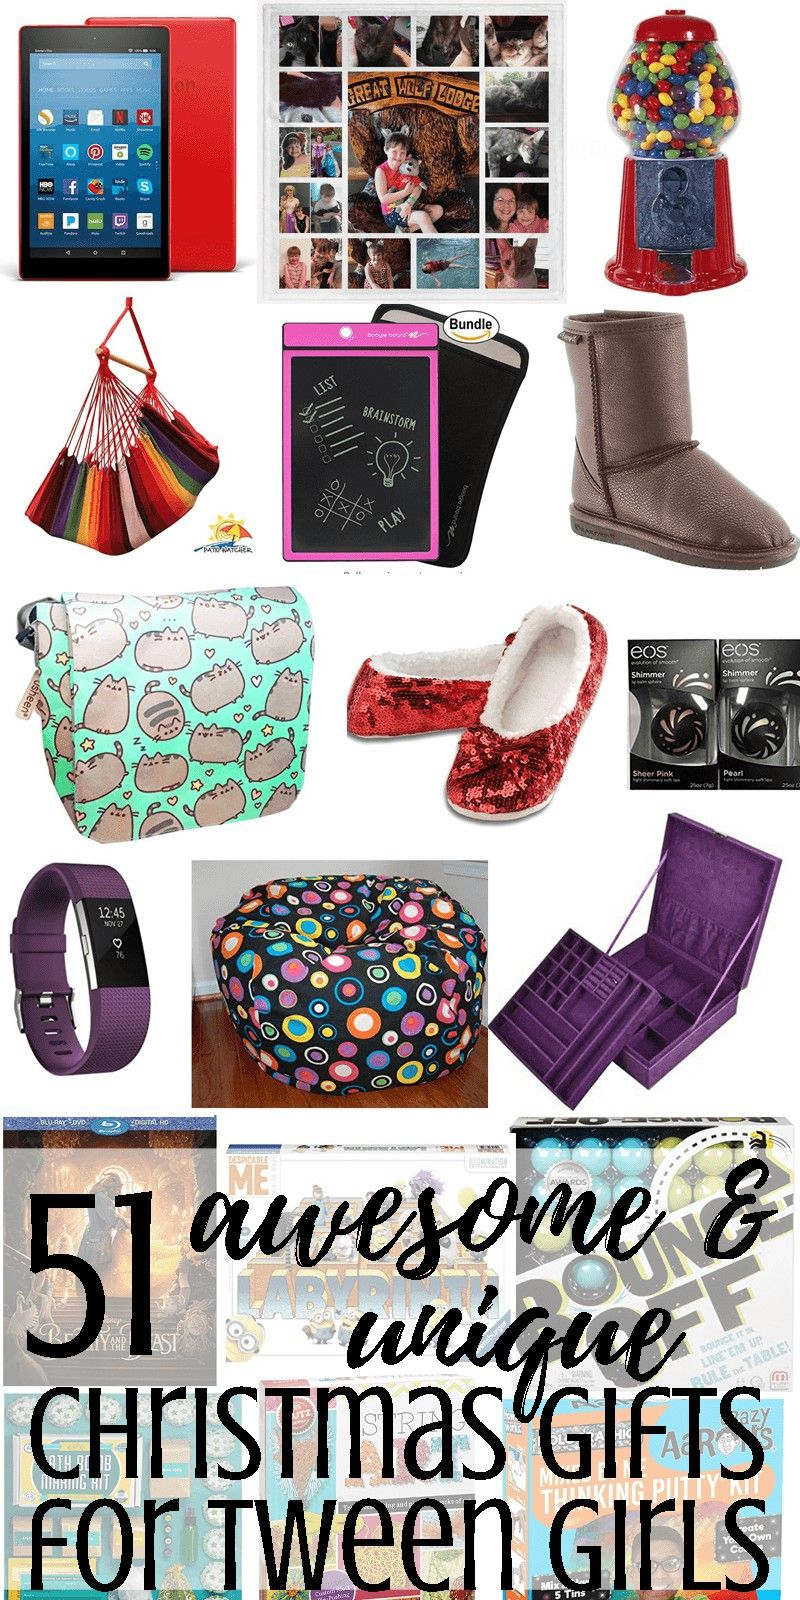 58 Awesome & Unique Christmas Gift Ideas for Tween Girls | Pinterest ...